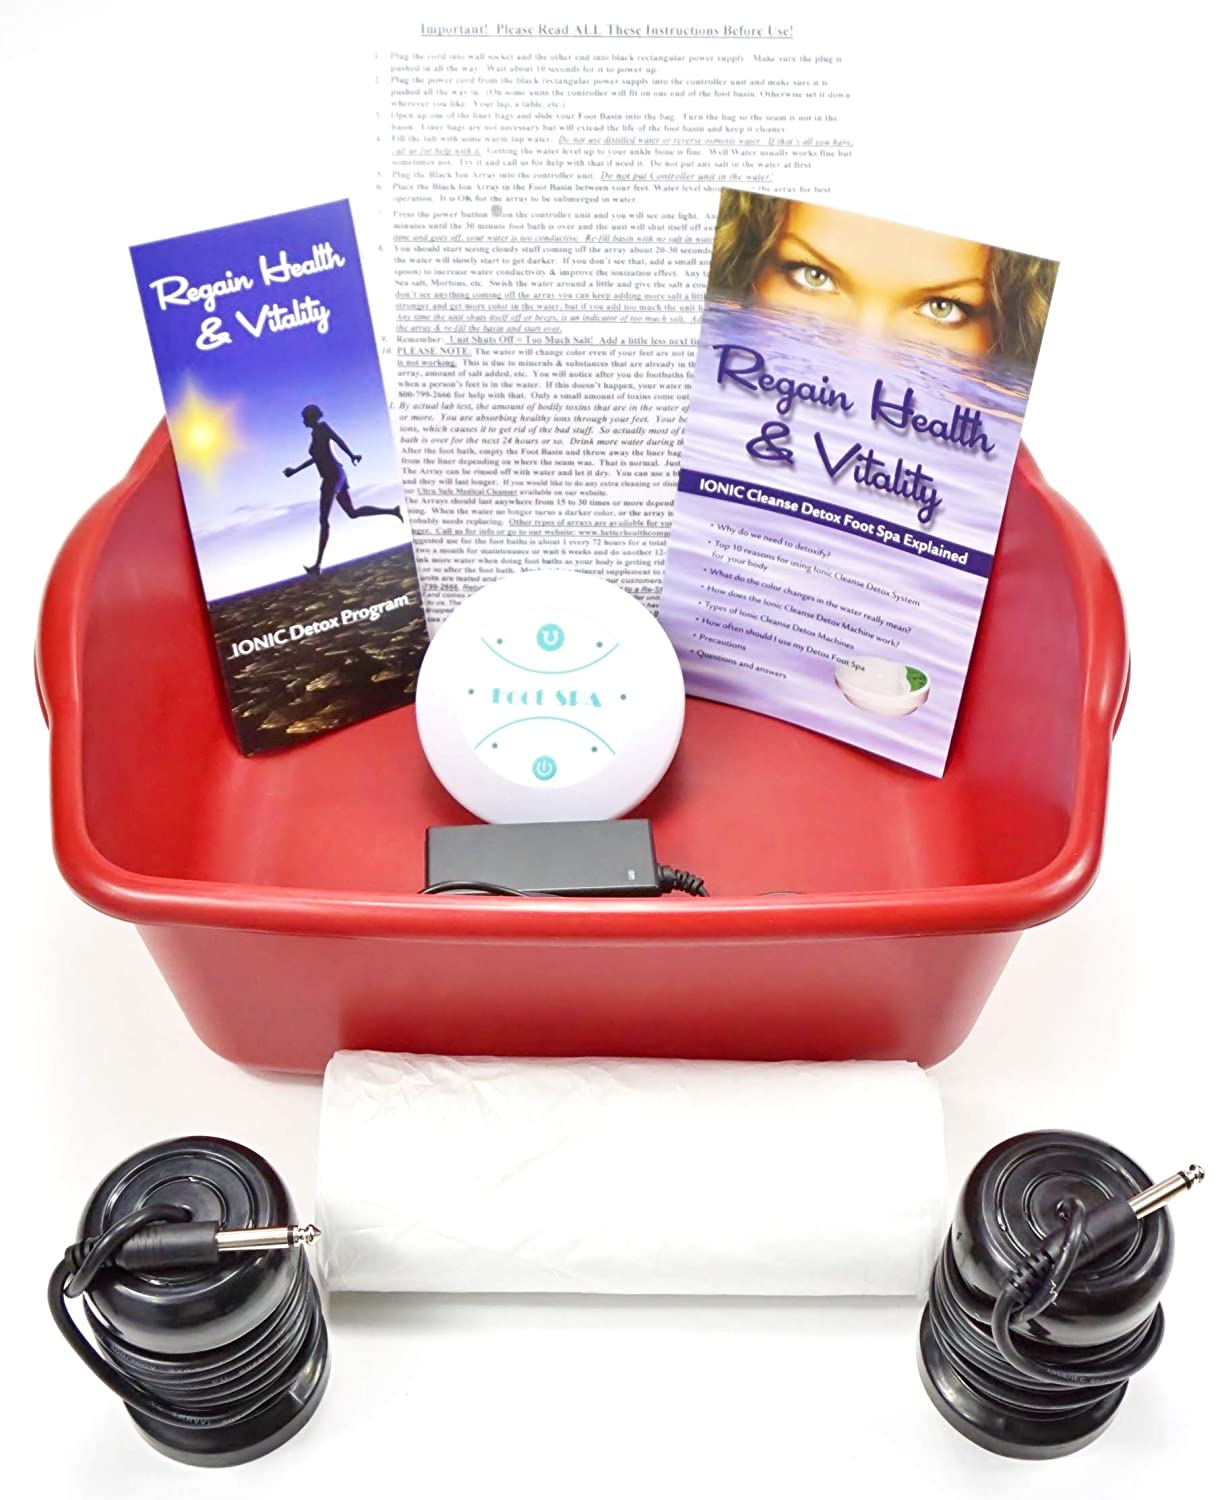 Ionic cleanse Detox Ionic Foot Bath Spa Chi Cleanse Unit for Home Use. Foot Spa Affordable Detox Foot Spa Machine with Free Booklet and Brochure, Regain Health & Vitality Better Health Company